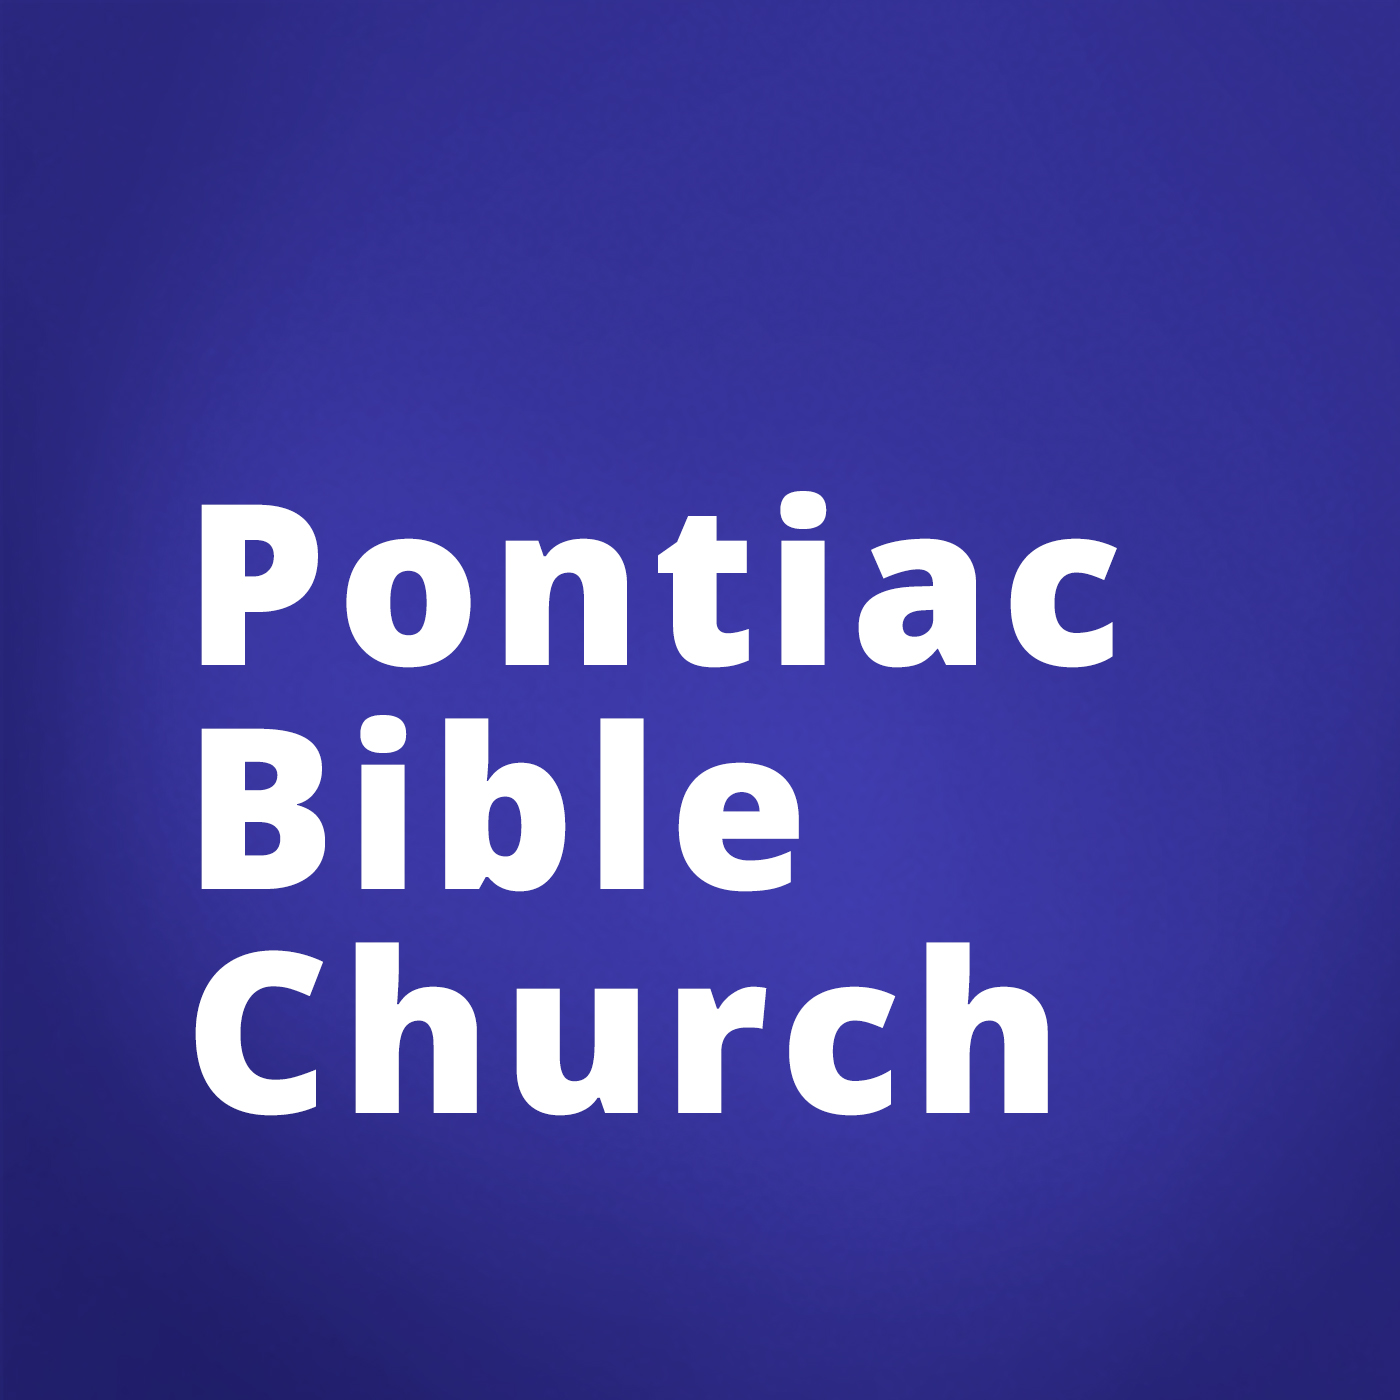 Pontiac Bible Church